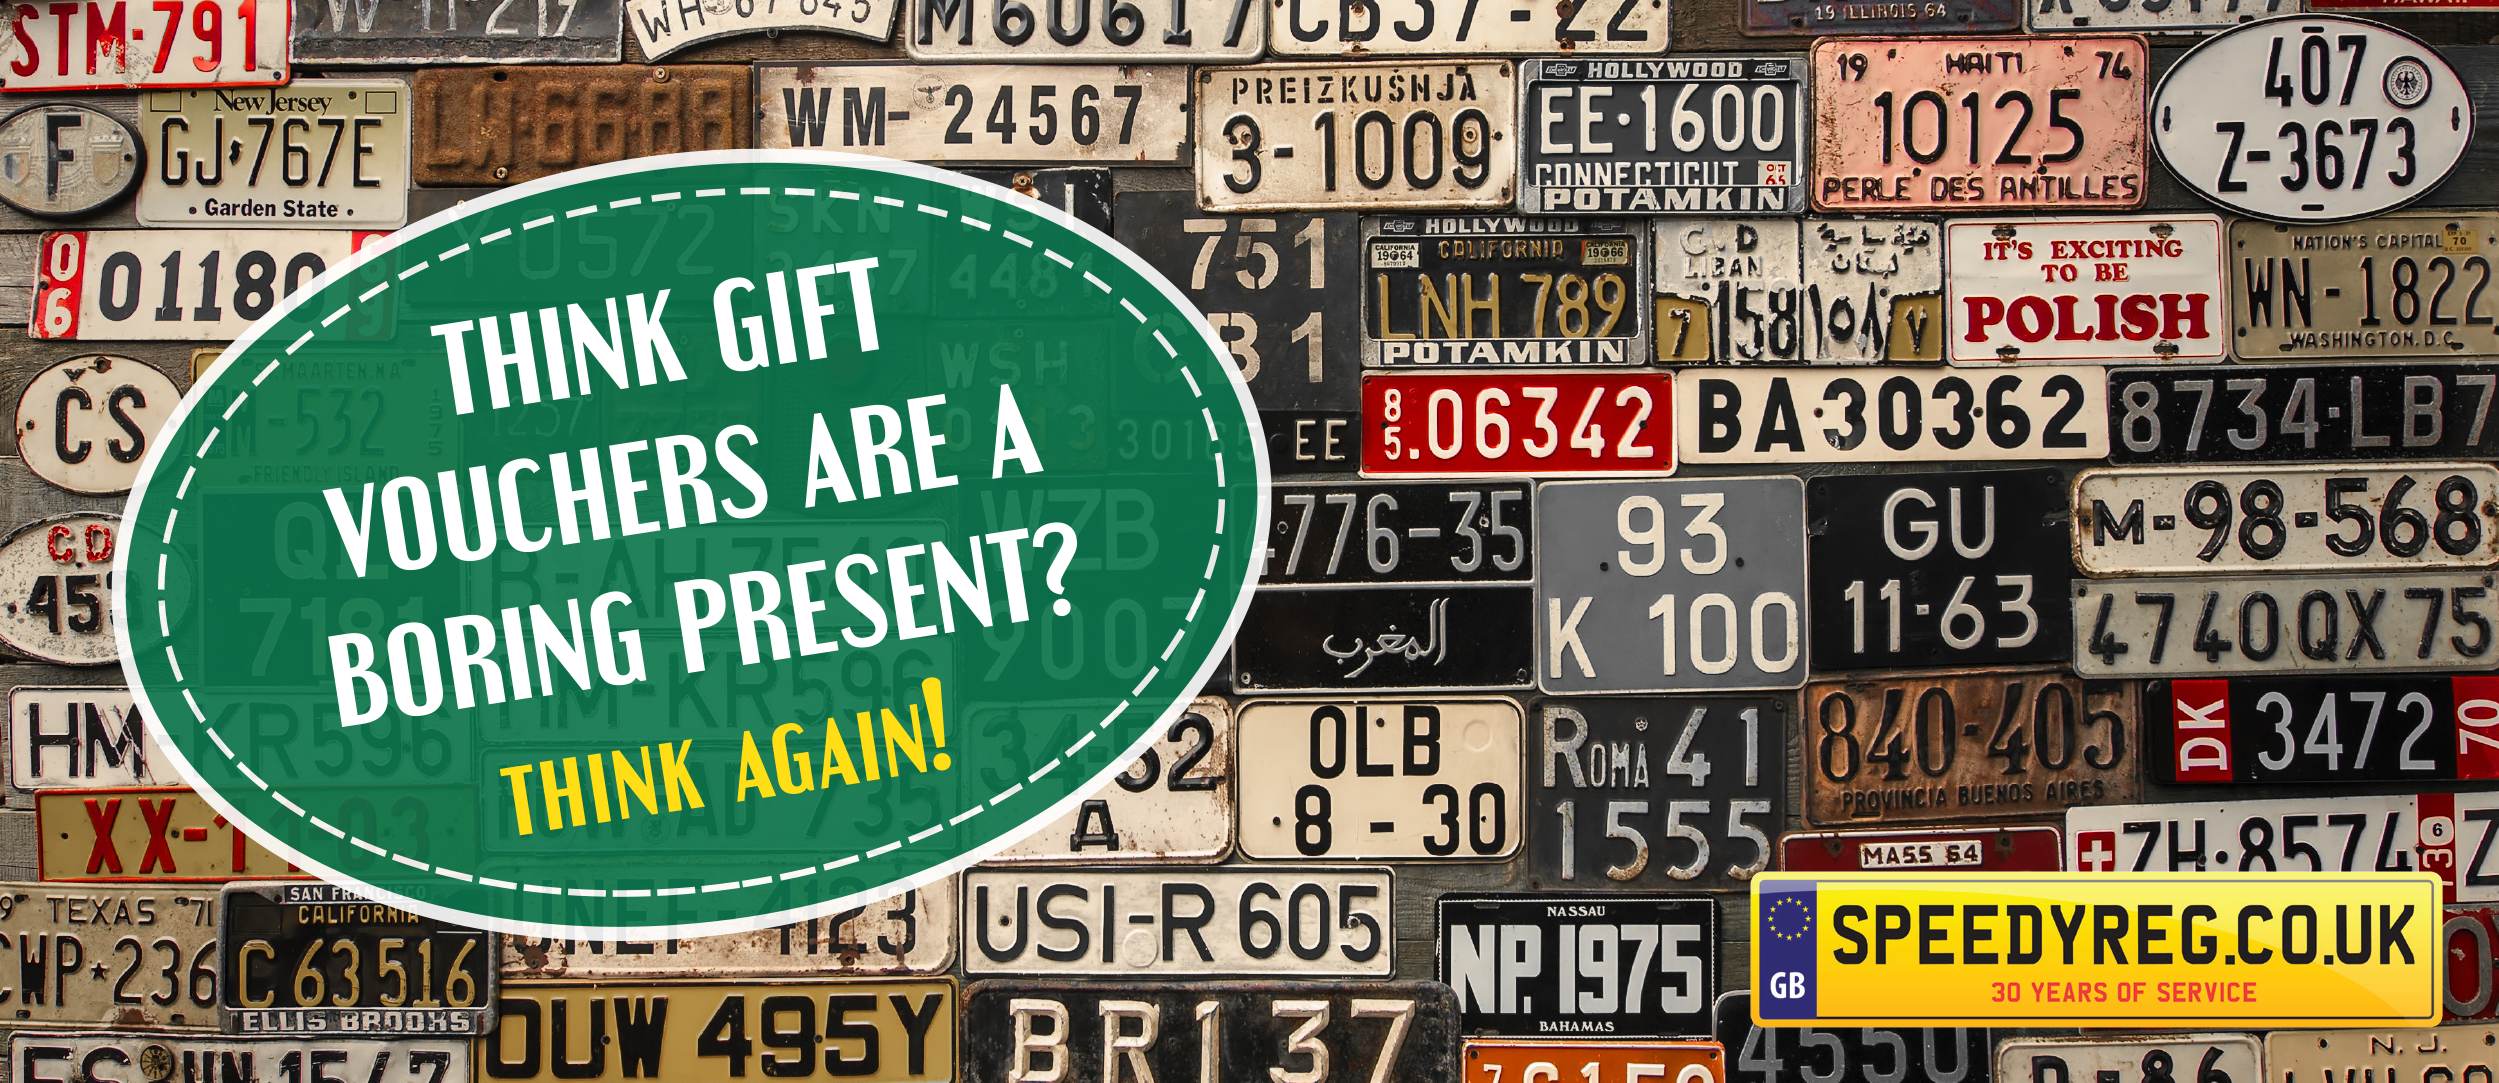 6-think-gift-vouchers-are-a-boring-present-think-again